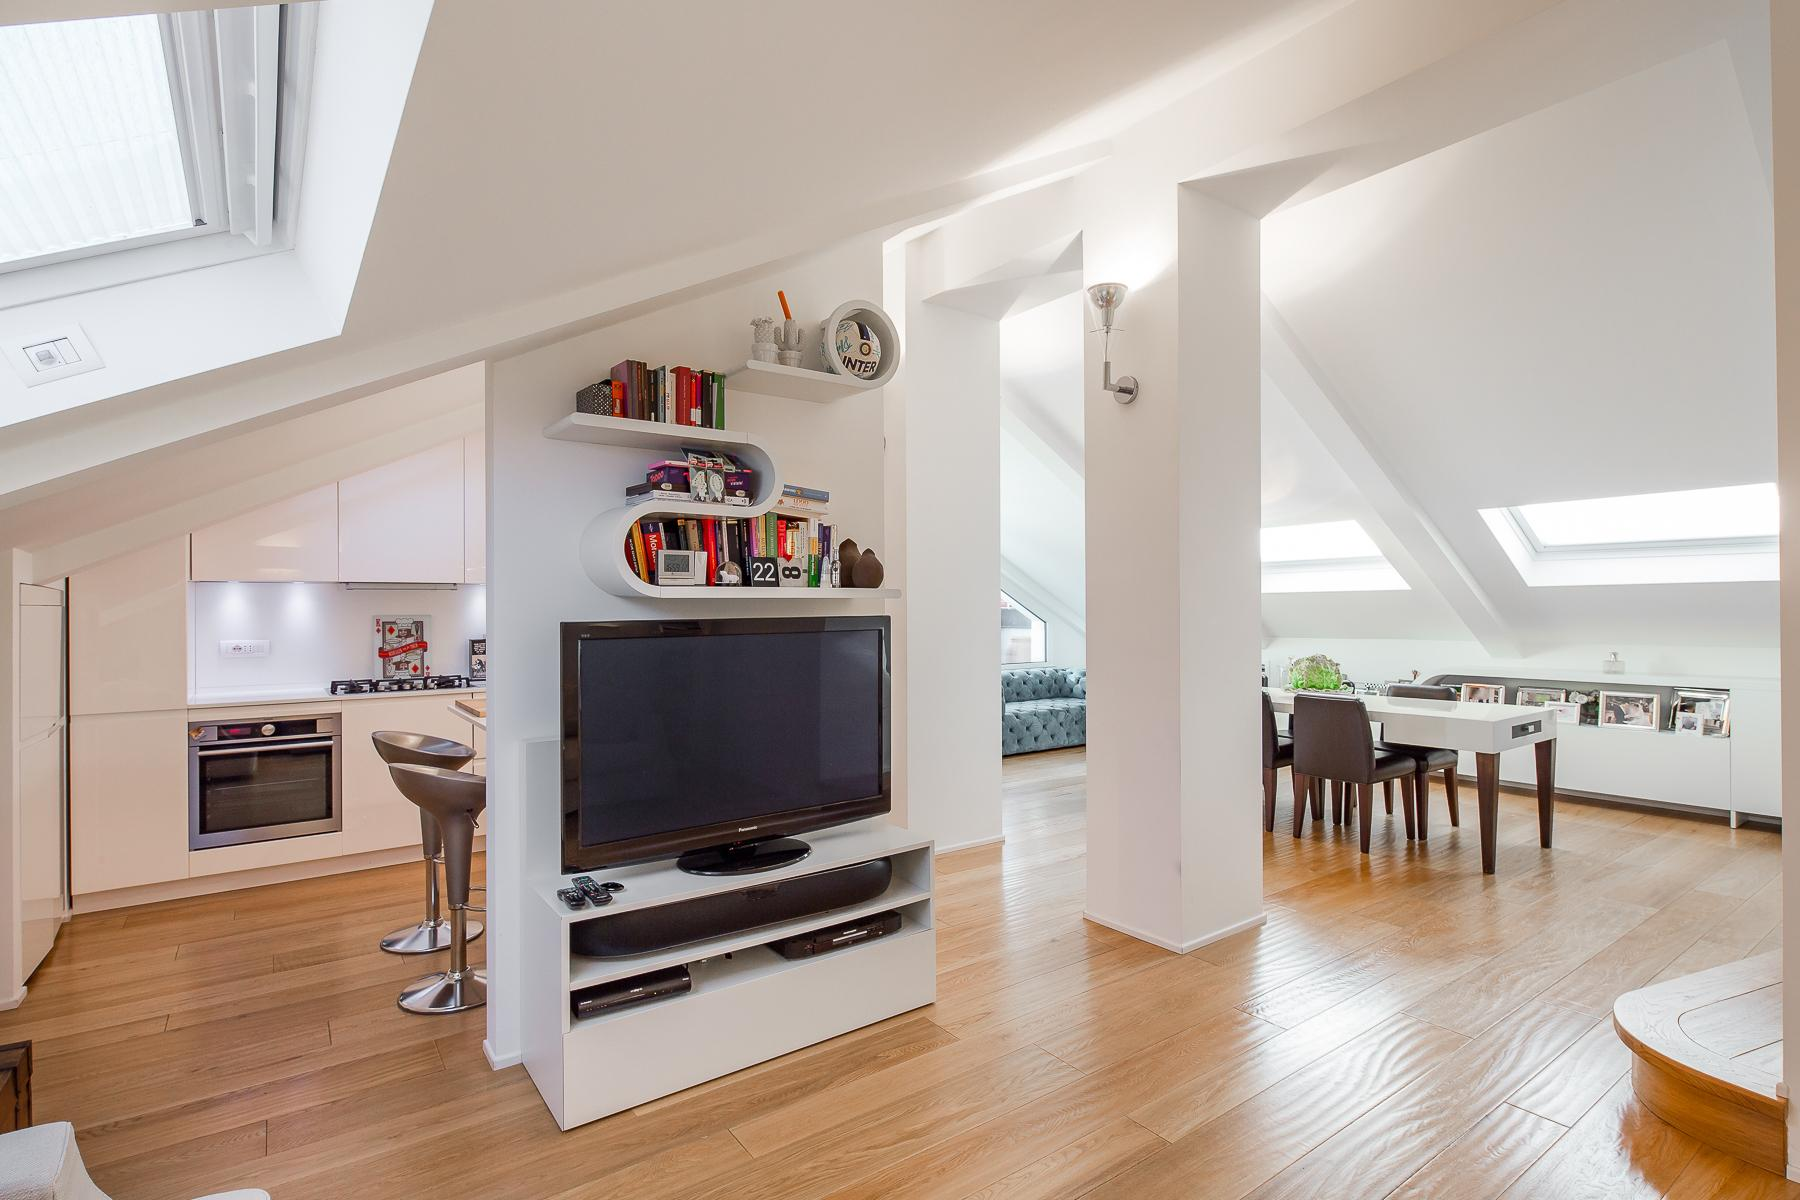 Charming penthouse with roof terrace in an elegant historic building - 10